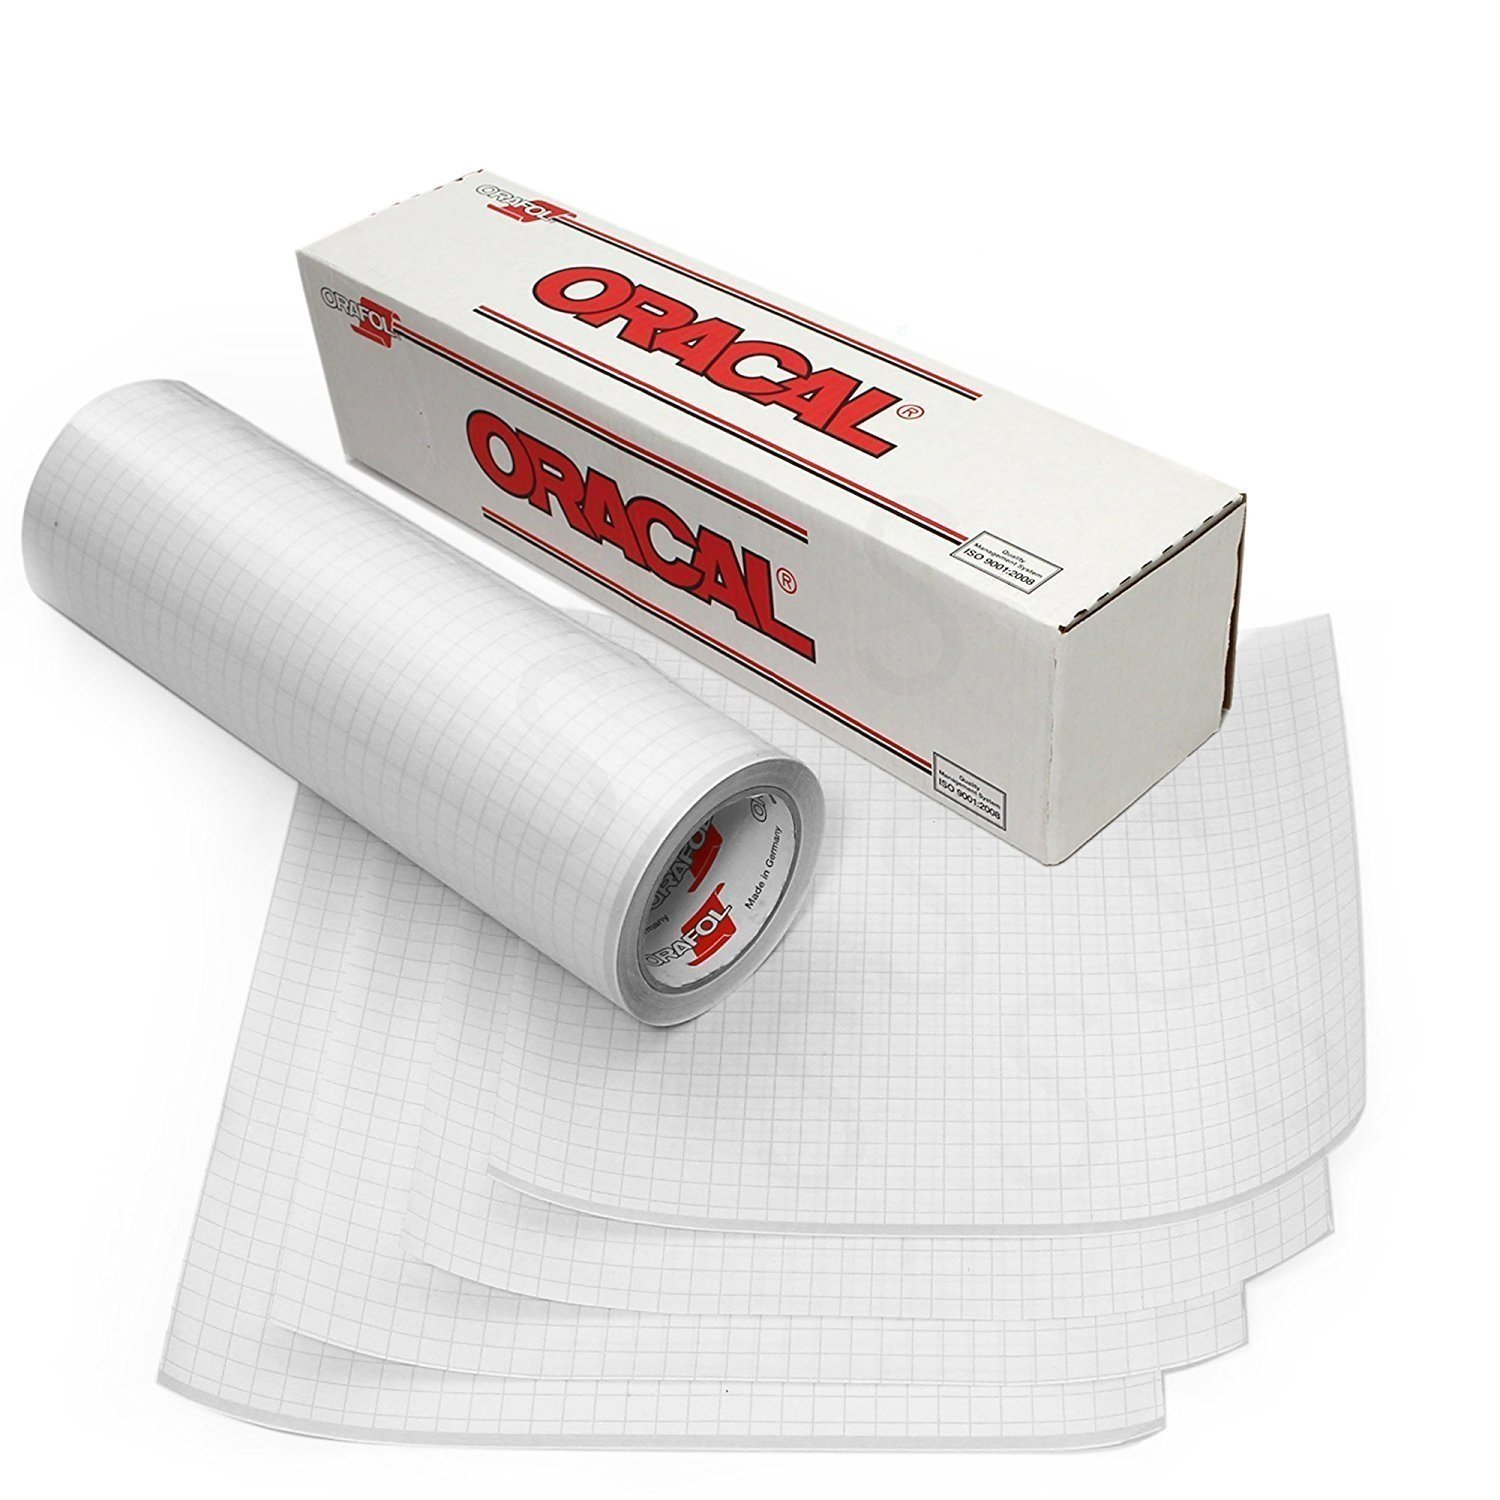 Oracal 12'' X 25' Feet Roll Clear Transfer Tape w/Grid for Adhesive Vinyl | Vinyl Transfer Tape for Cricut, Silhouette, Cameo. Application Paper Transfer Tape Rolls